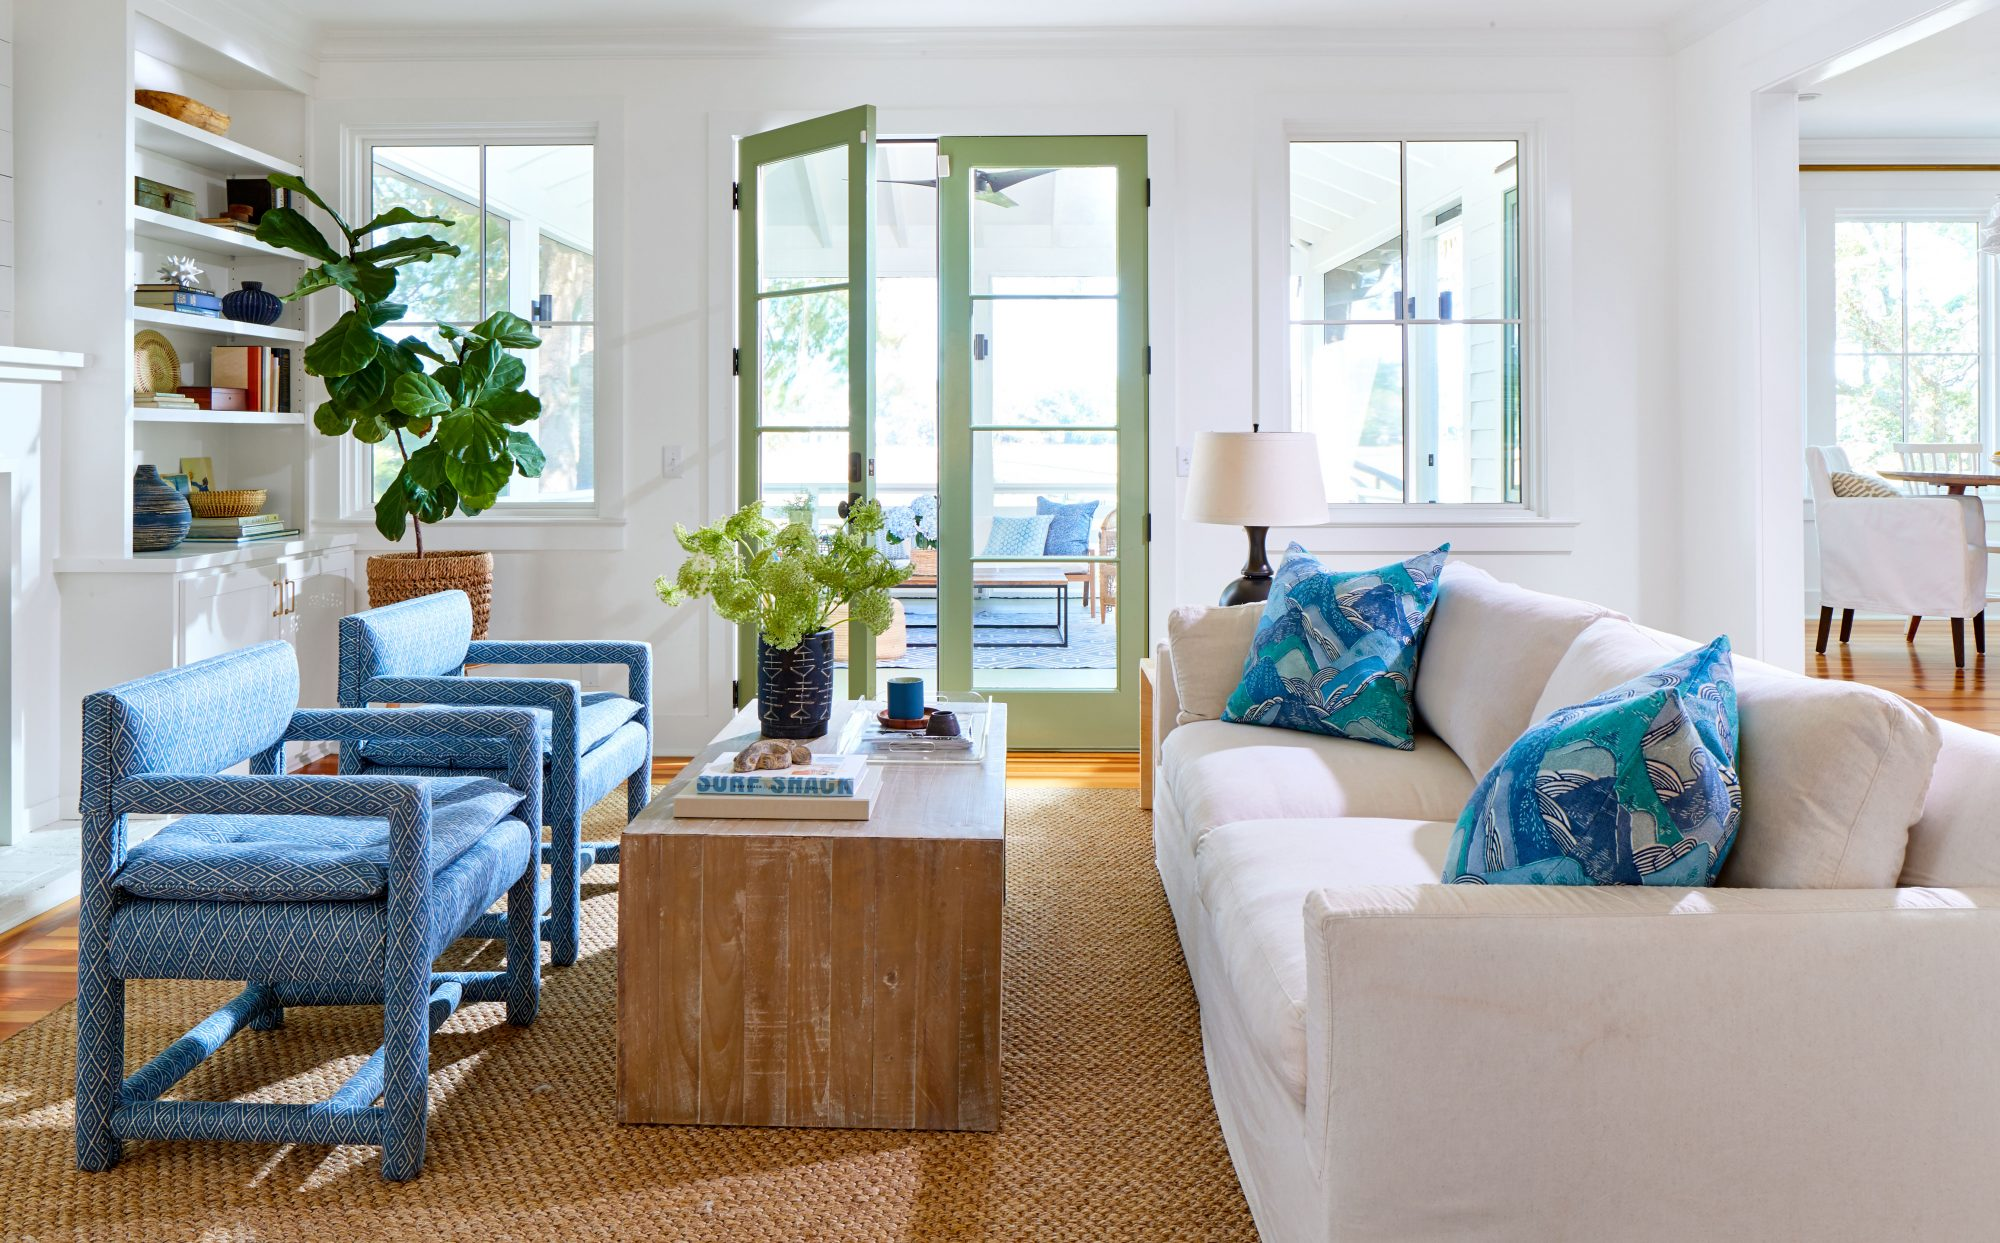 White and Blue Living Room with Natural Accents